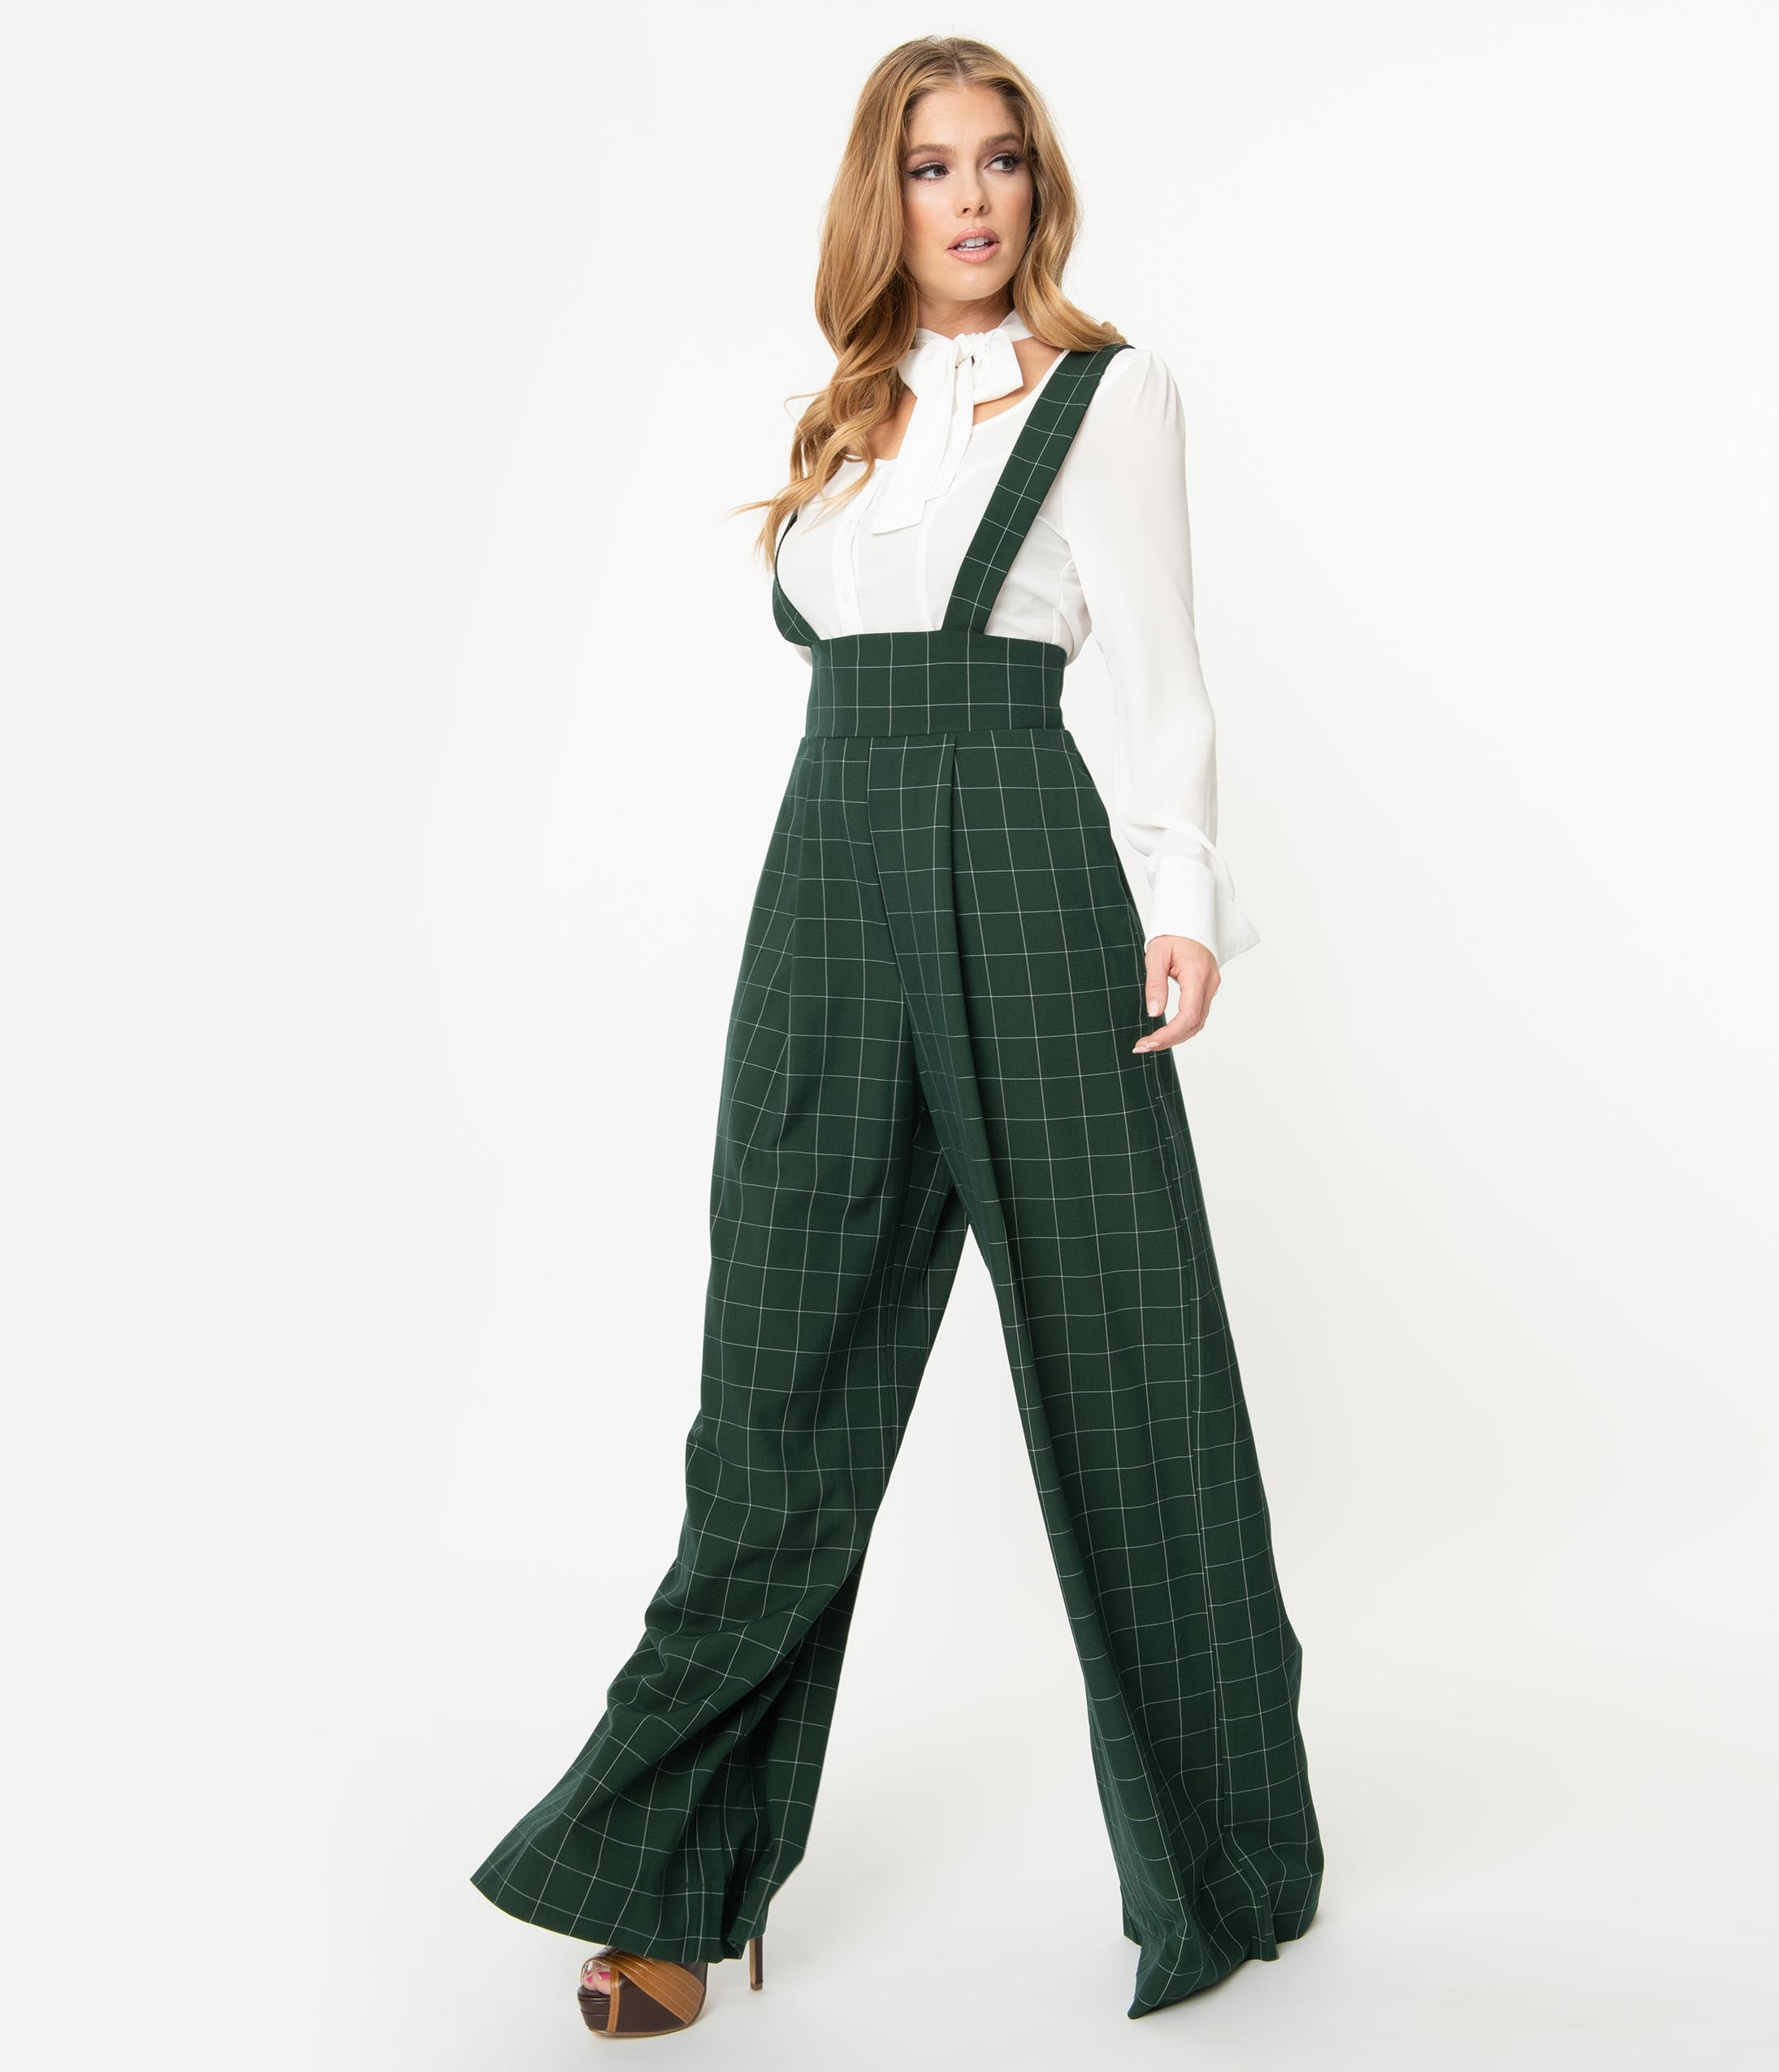 Vintage Overalls 1910s -1950s History & Shop Overalls Unique Vintage Emerald Windowpane Rochelle Suspender Pants $64.00 AT vintagedancer.com